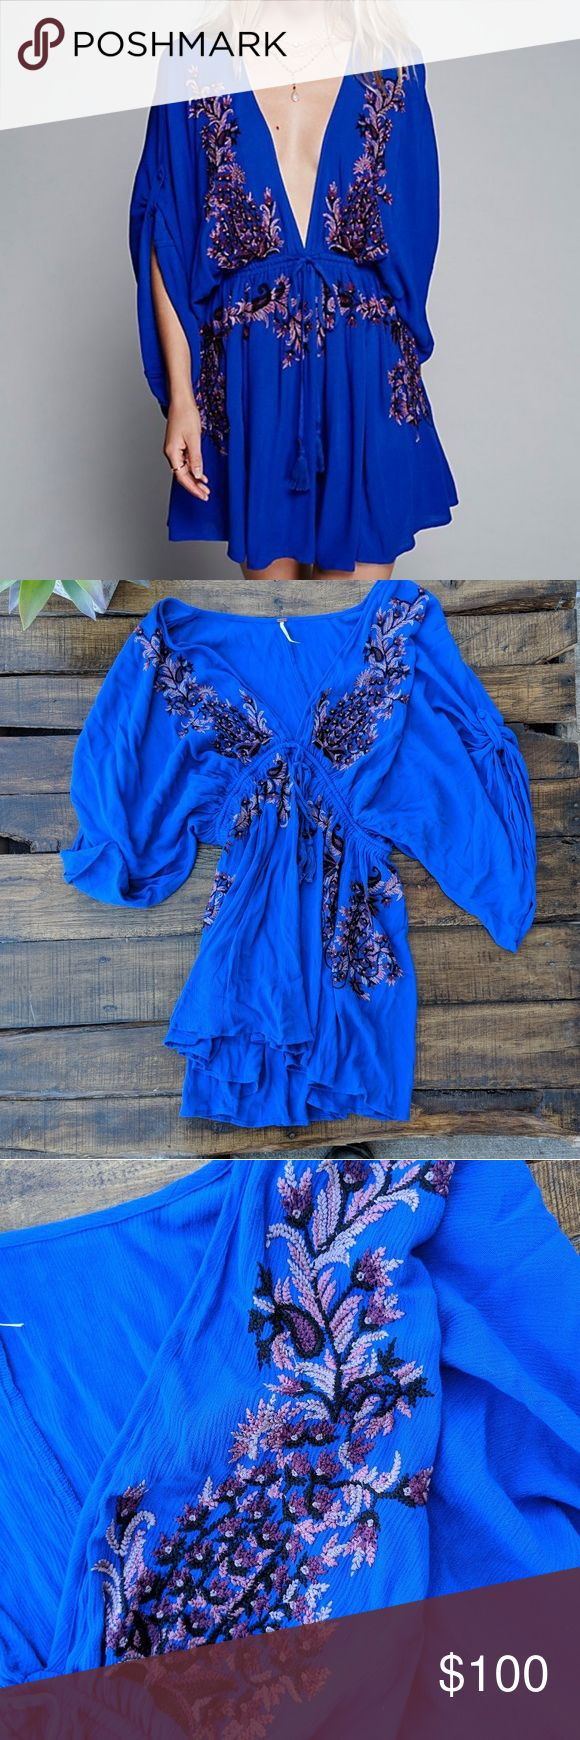 Free People Pretty Pineapple Embroidered Dress Absolutely stunning blue with embroidered purple and pink flowers, cinch & tie waist, deep v neck, flowy dress. Excellent condition!  MEASUREMENTS (INCHES): Keep in mind that the dress is very flowy and there really is no defined shoulder, sleeve or chest area.   CHEST: 17 SHOULDER: 16 LENGTH: 35 1/2 SLEEVE: 23 WAIST: 14 1/4 Free People Dresses Mini